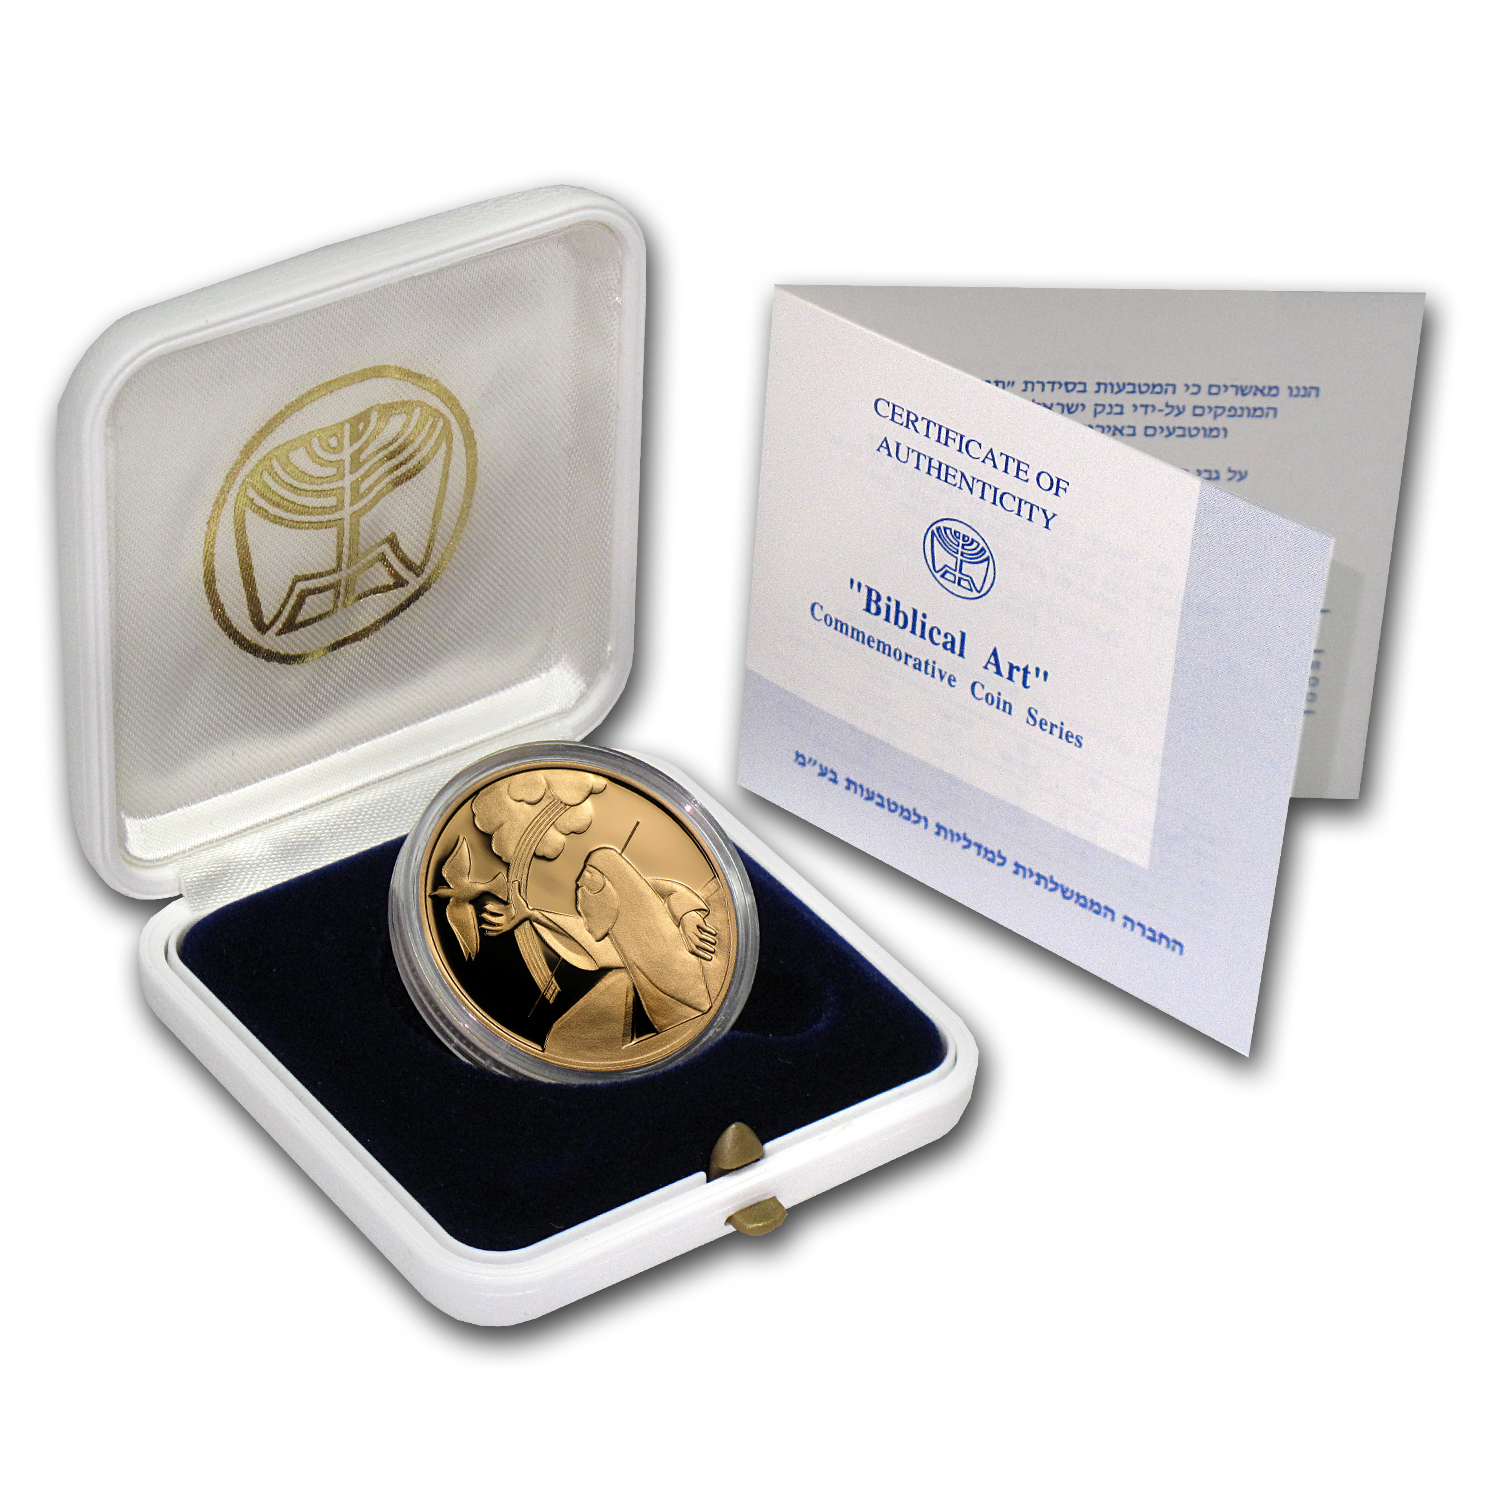 1998 Israel 1/2 oz Proof Gold Noah's Ark Coin (w/Box & COA)